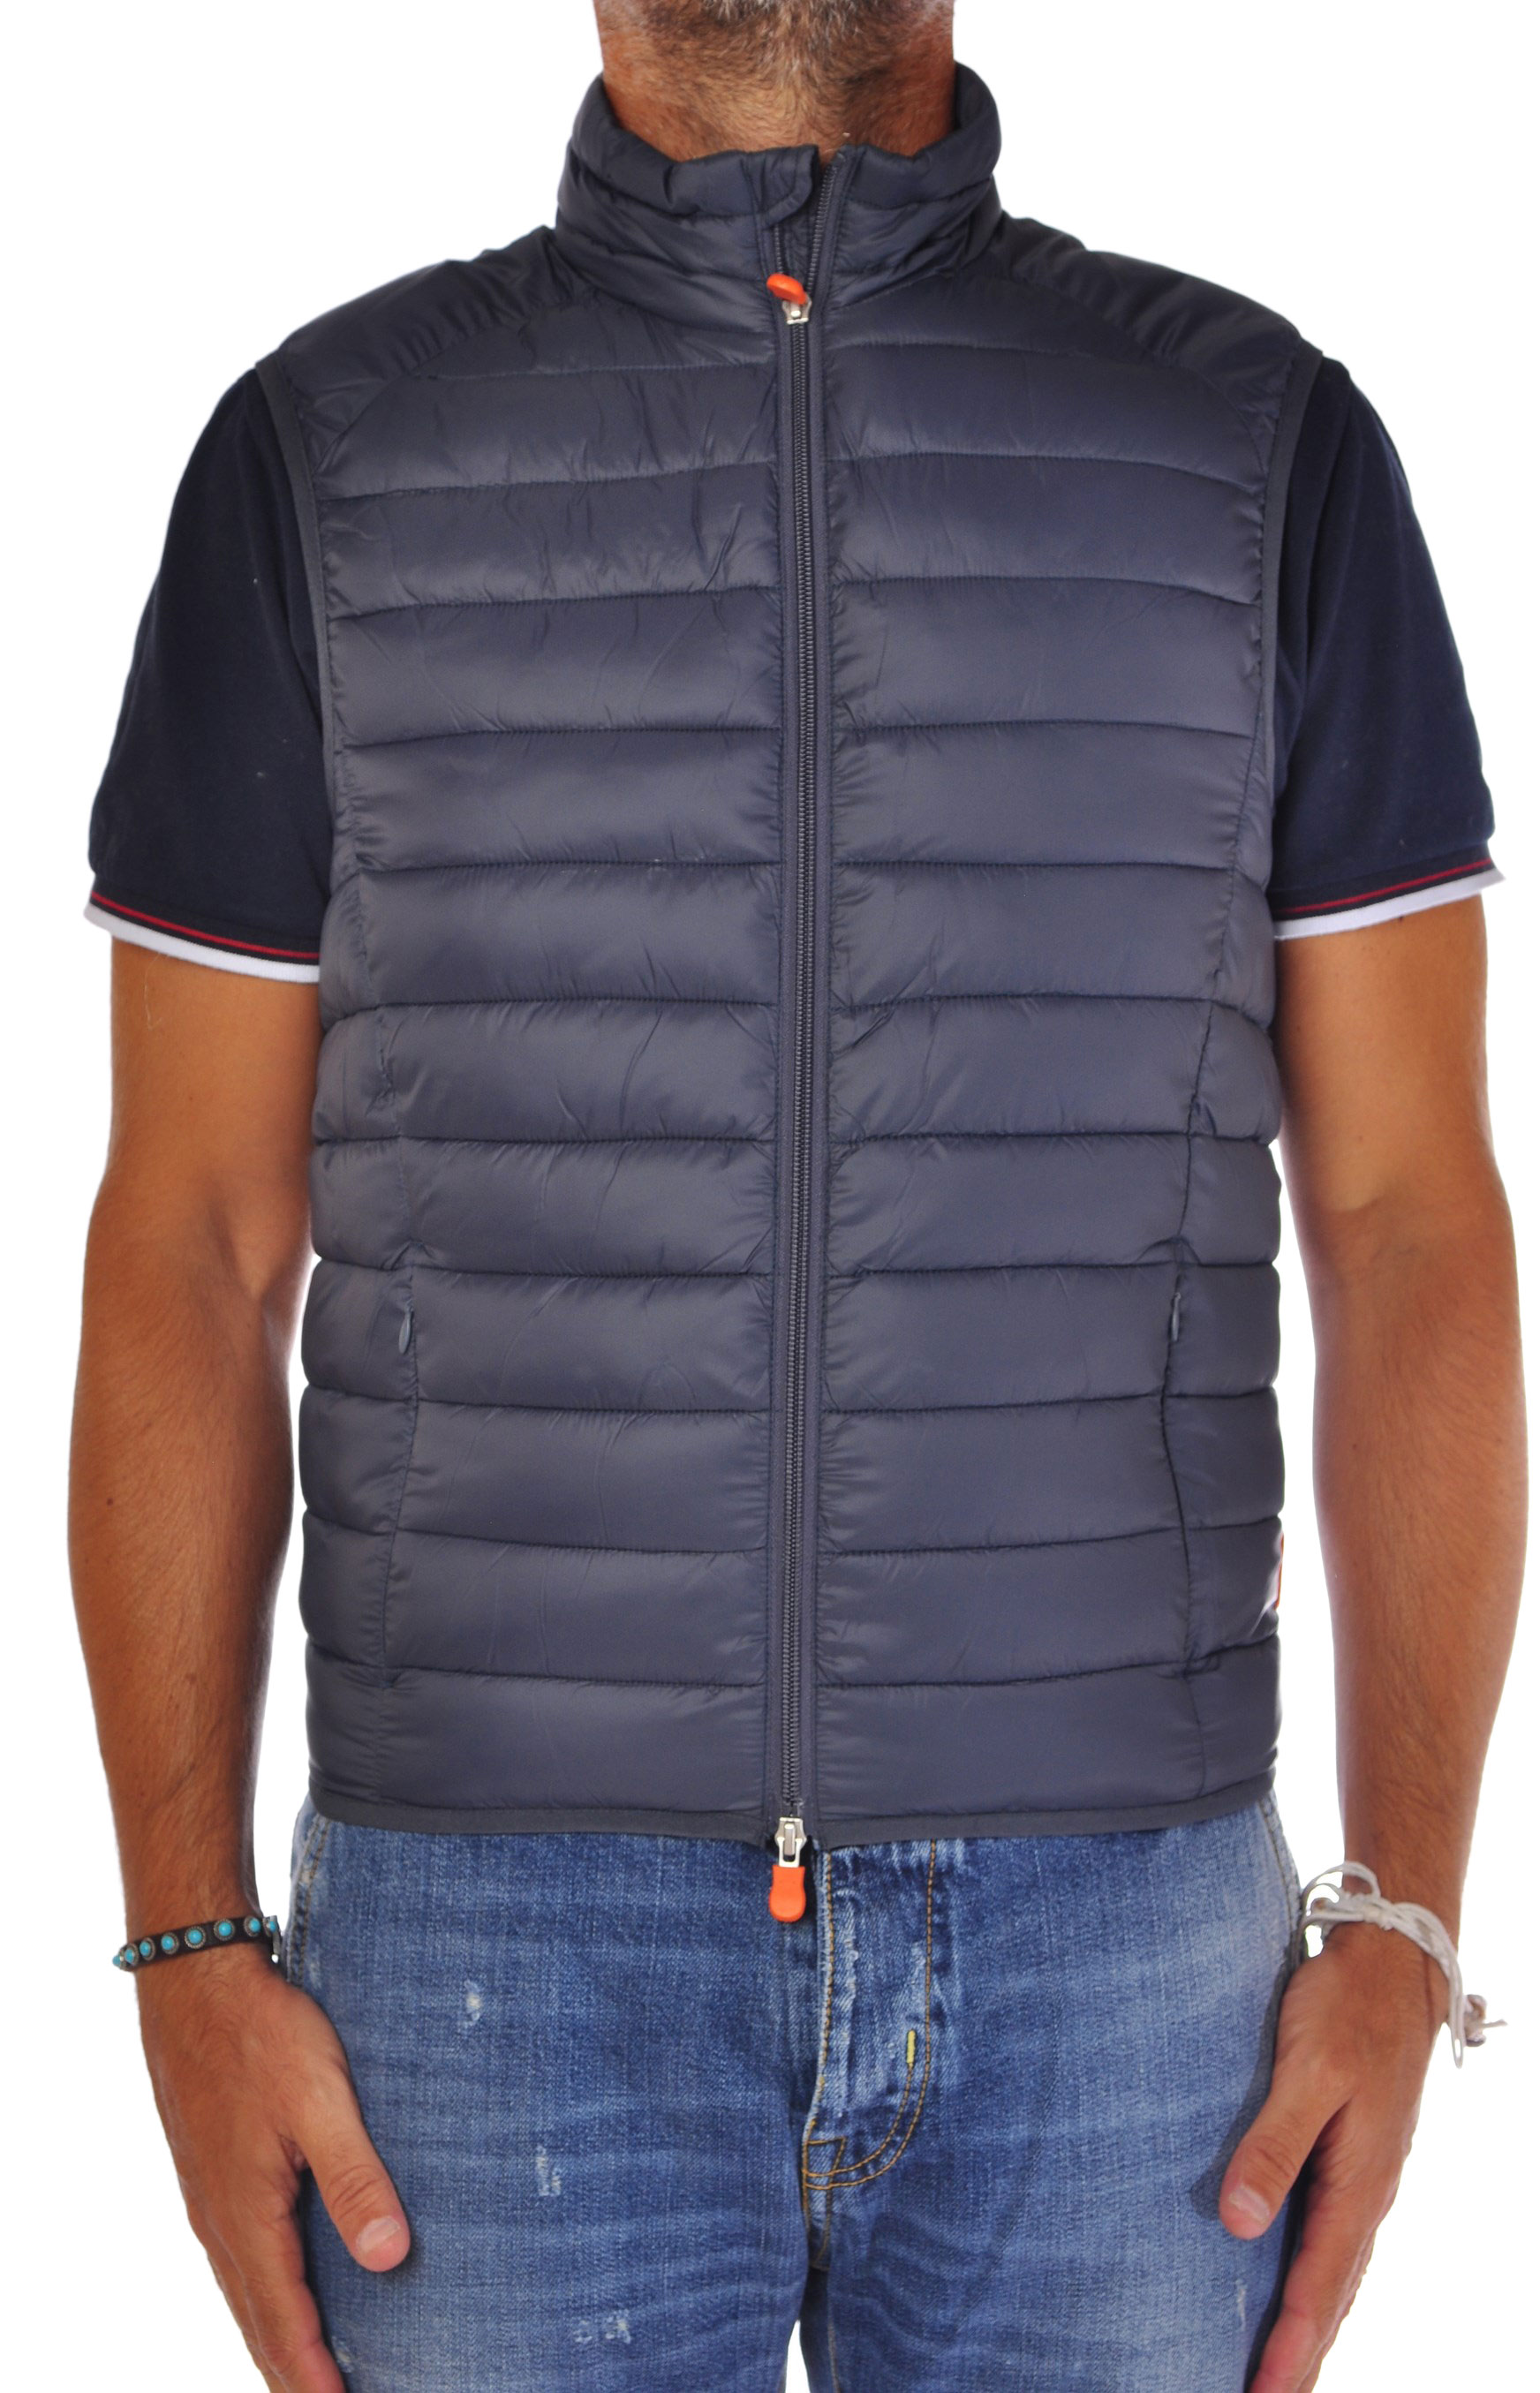 Save The Duck Gilet Brescishop - Save The Duck